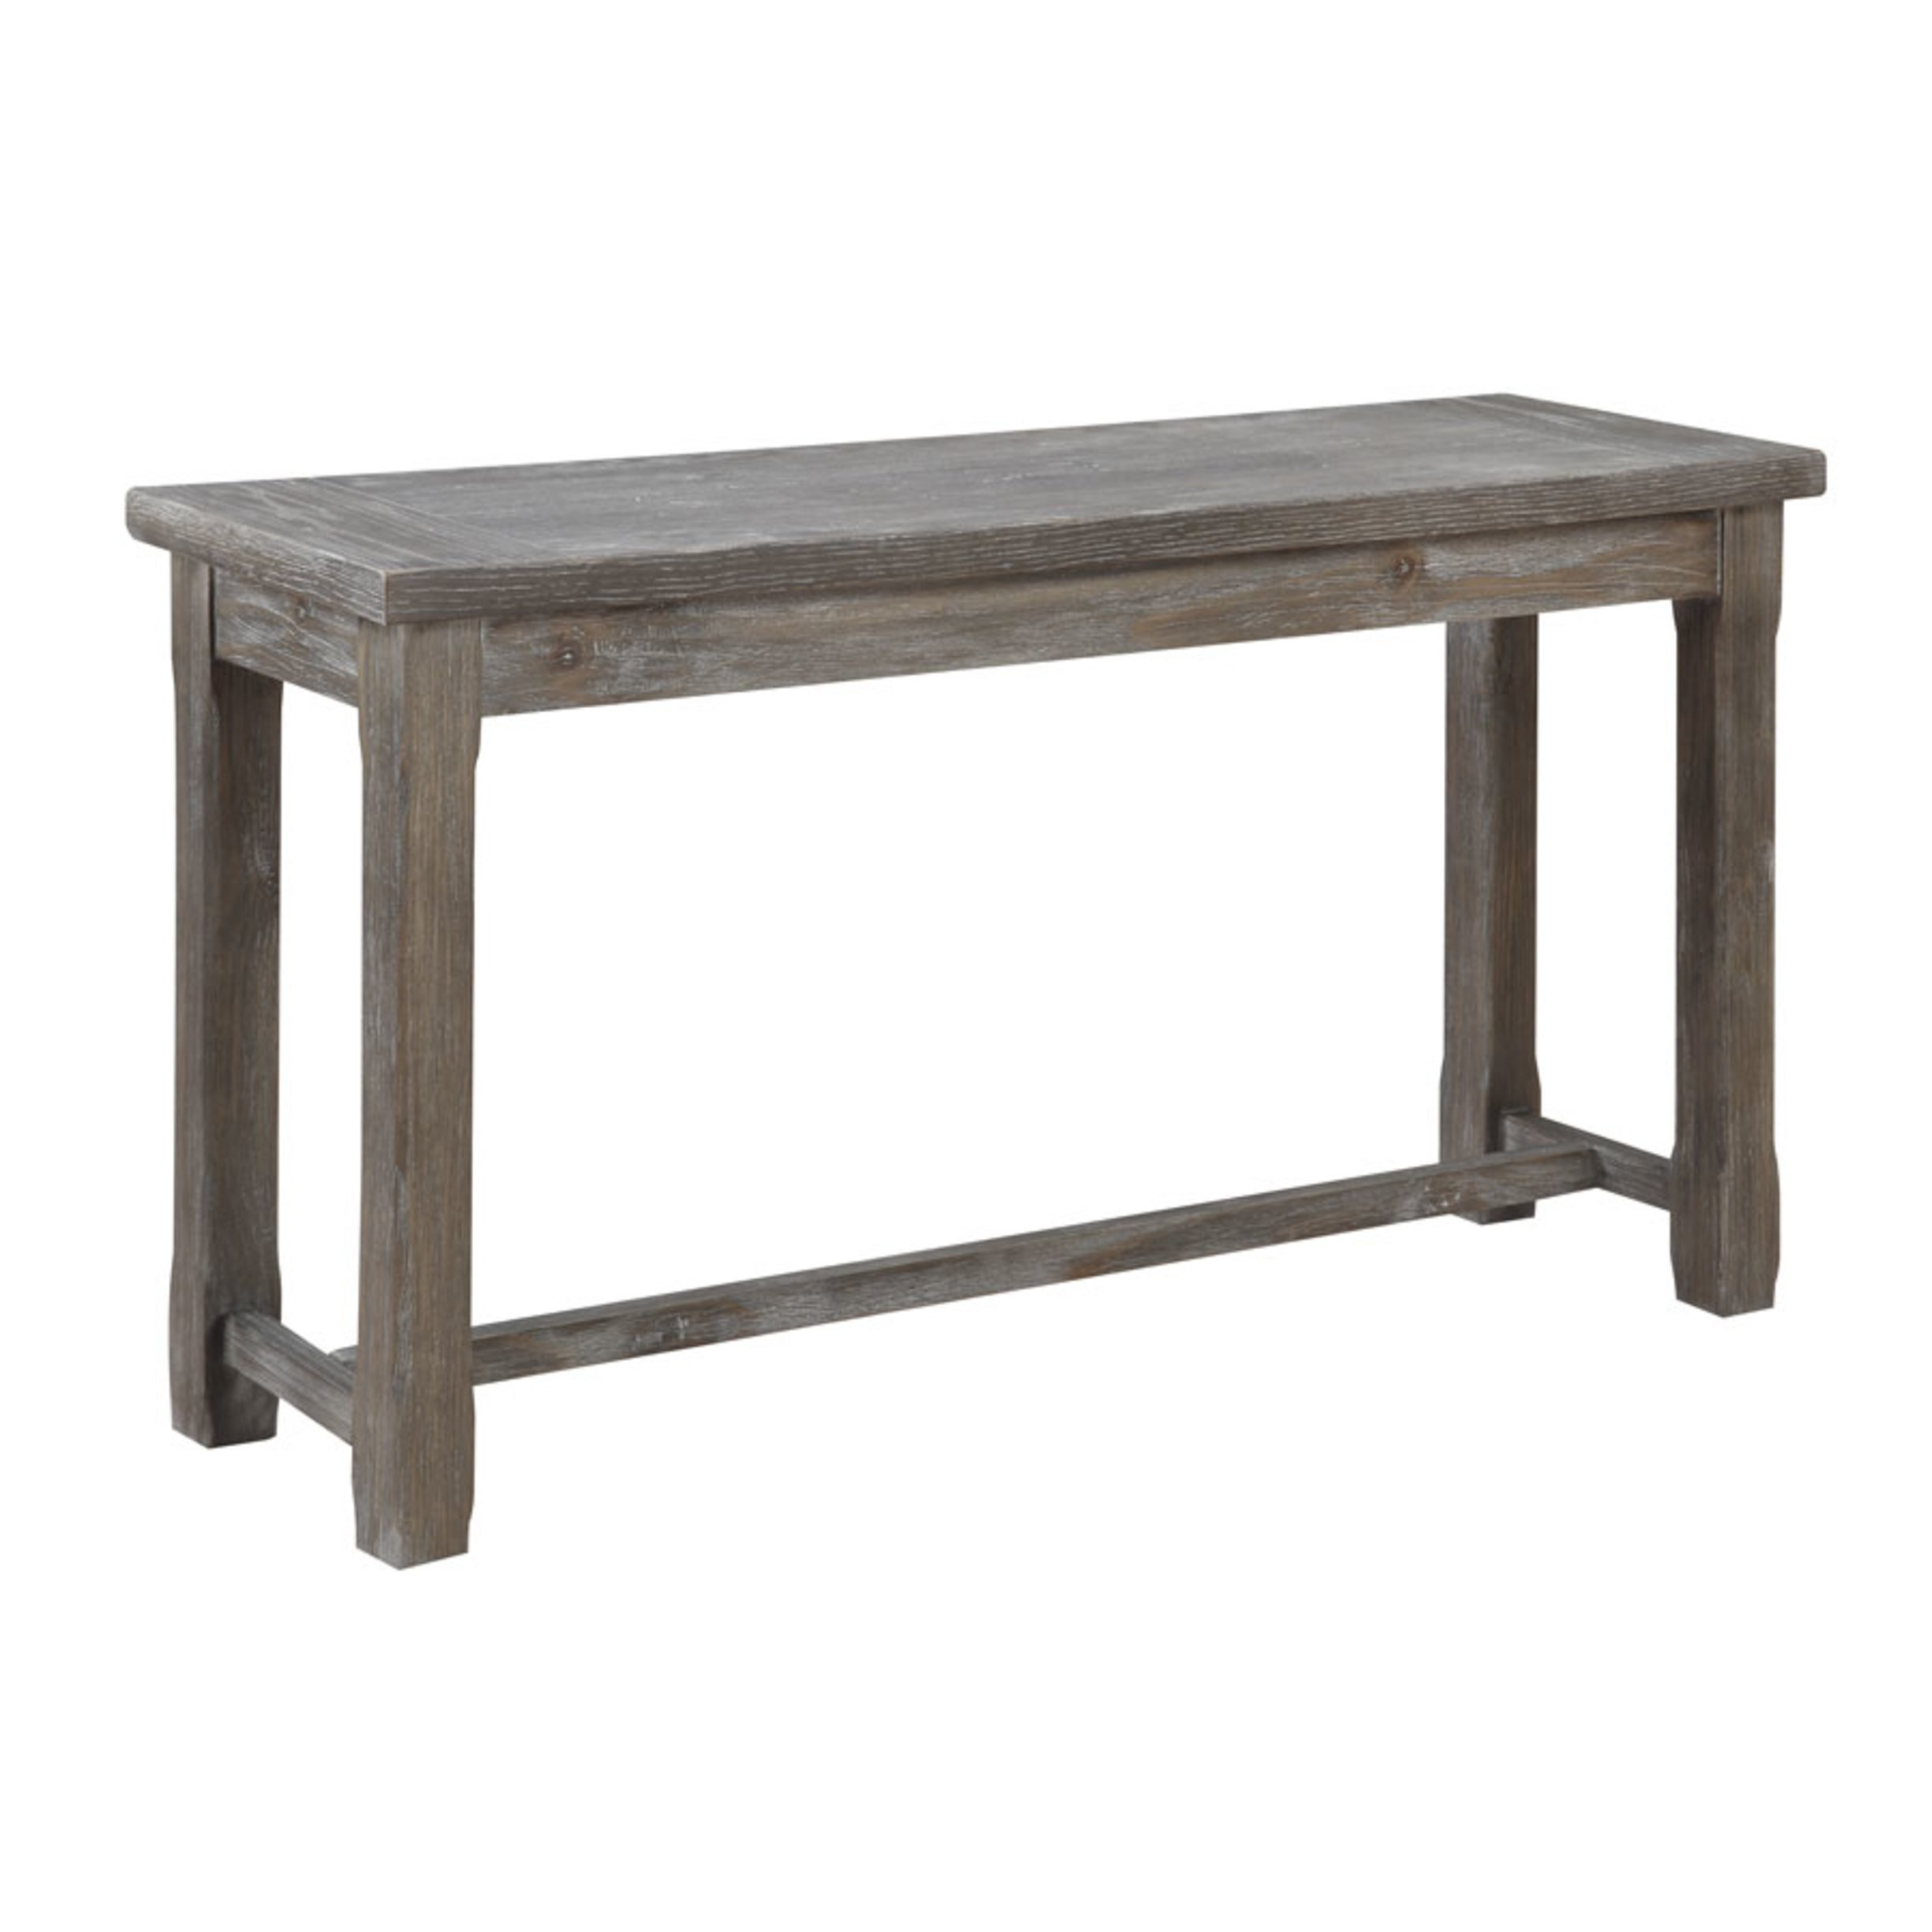 Emerald Home Paladin Rustic Charcoal Gray Sofa Table with Plank Style Top And Farmhouse Timber Legs by Emerald Home Furnishings